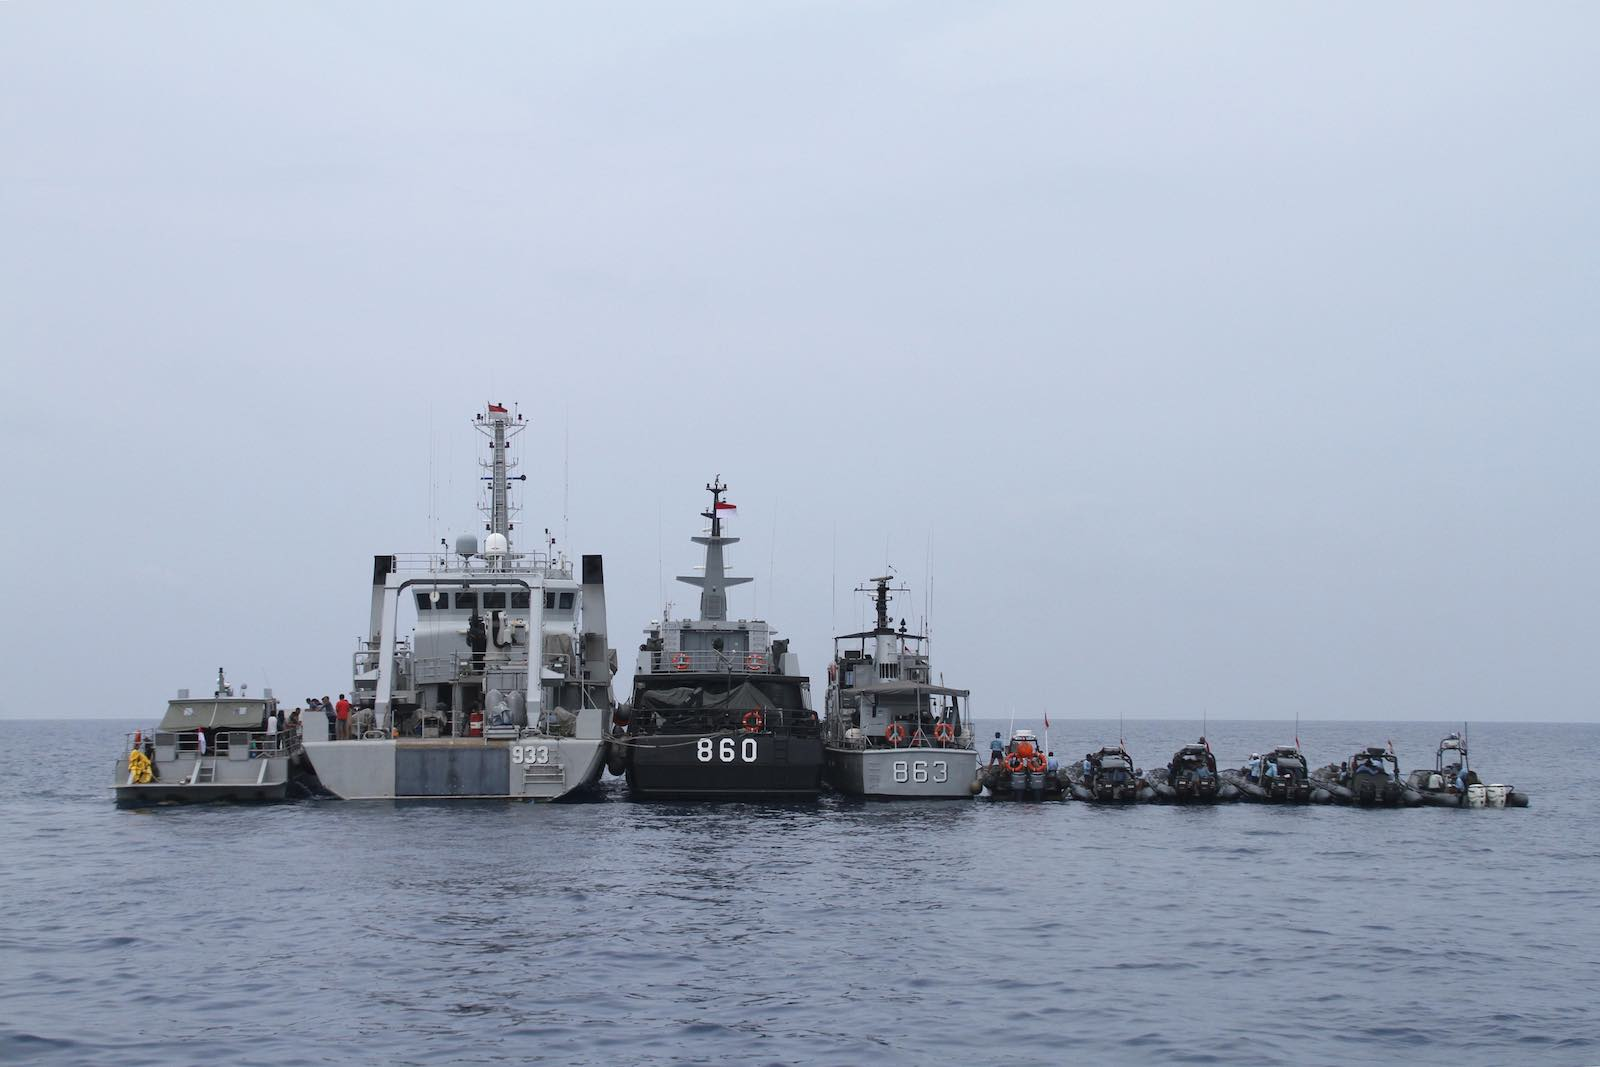 Indonesian navy vessels preparing for a search and rescue operation in 2018 (Azwar Ipank/AFP via Getty Images)